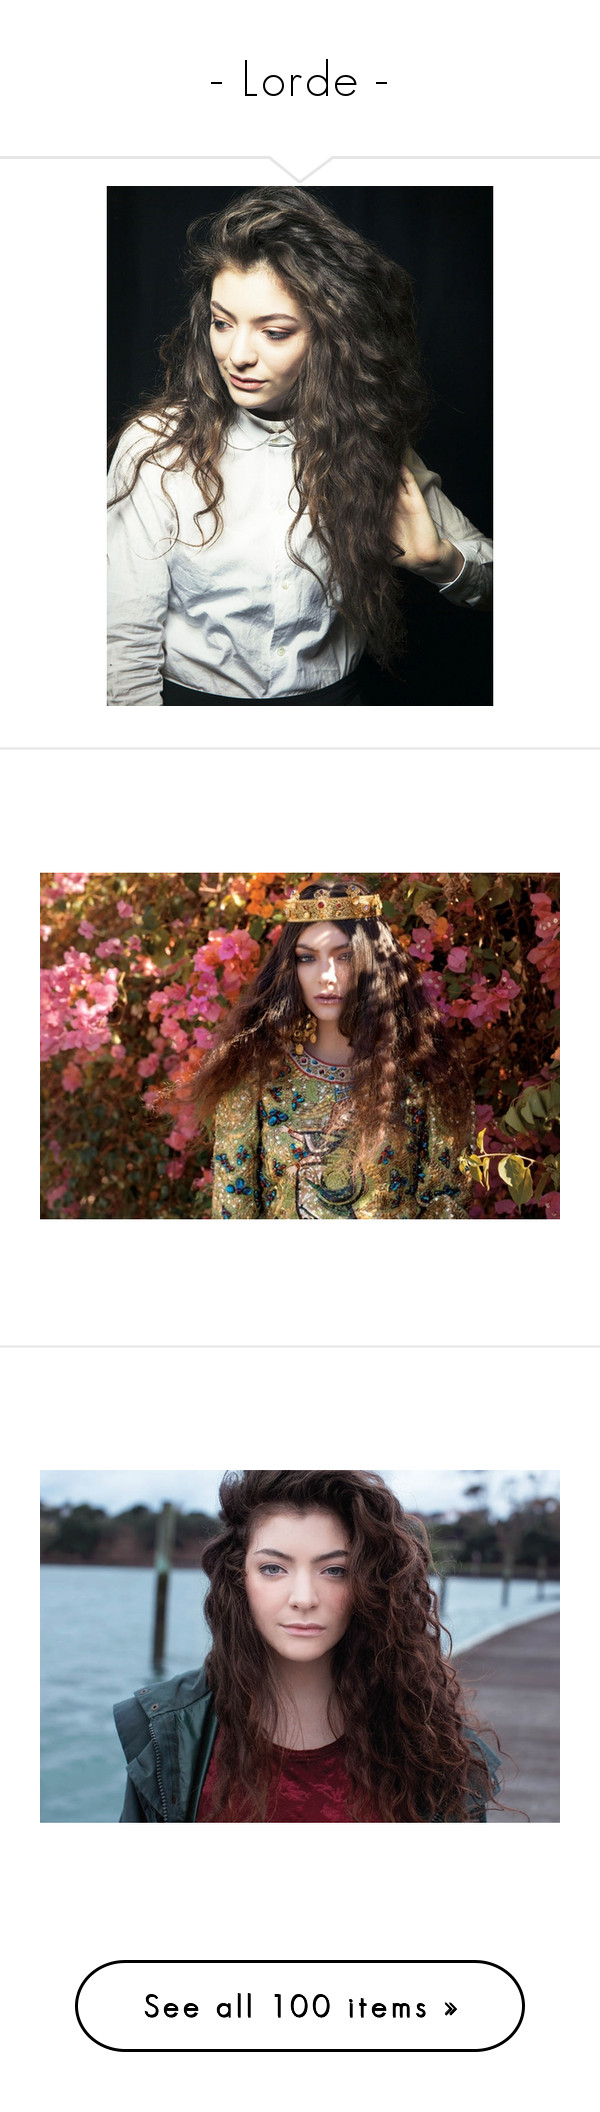 """""""- Lorde -"""" by dreamer-maeve ❤ liked on Polyvore featuring lorde, people, pictures, music, photos, celebs, girls, hair, backgrounds and icons"""